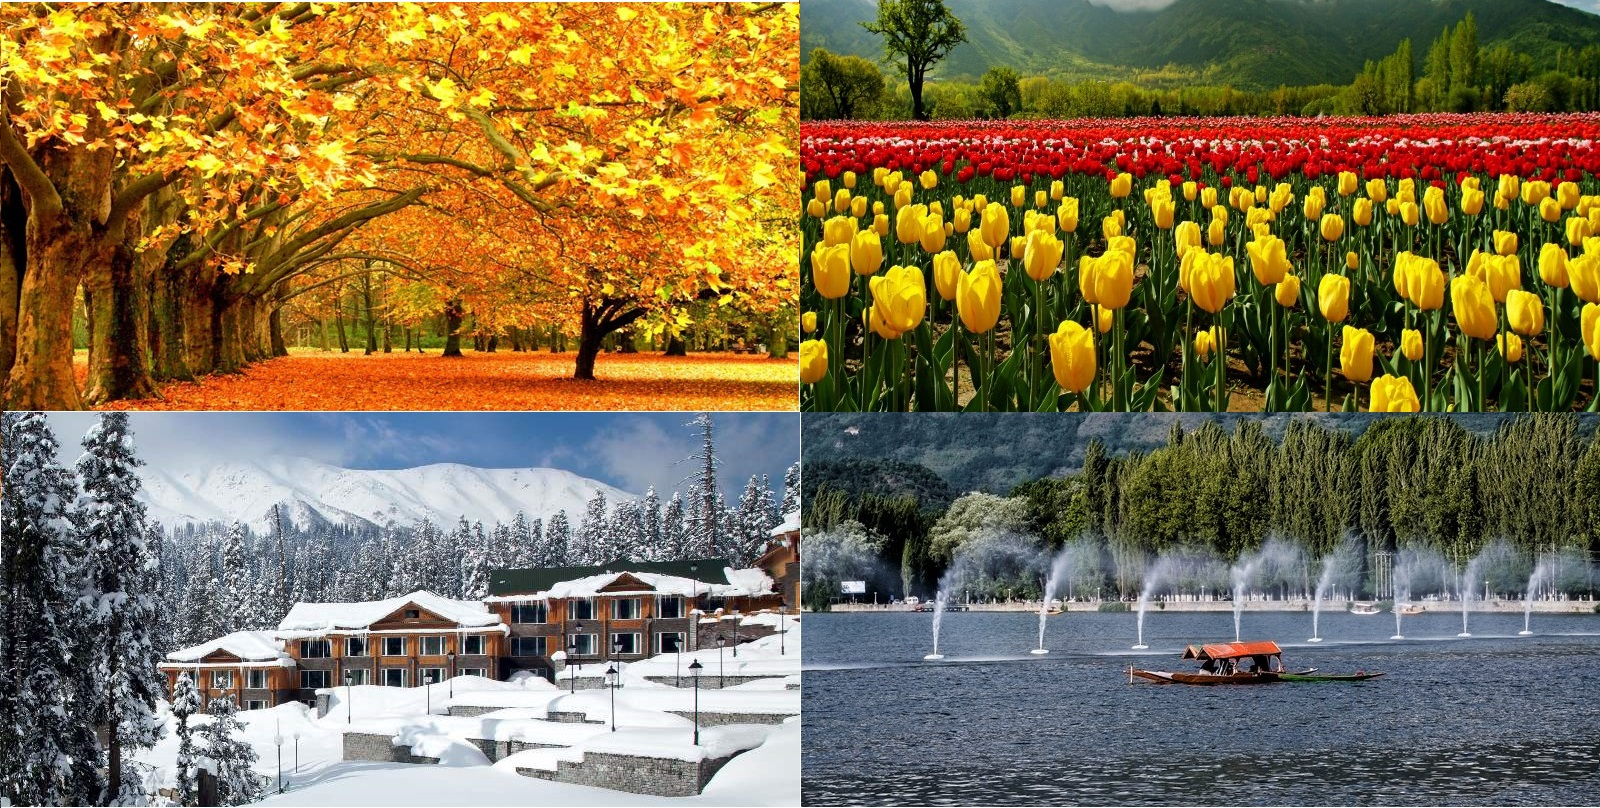 All seasons of Kashmir